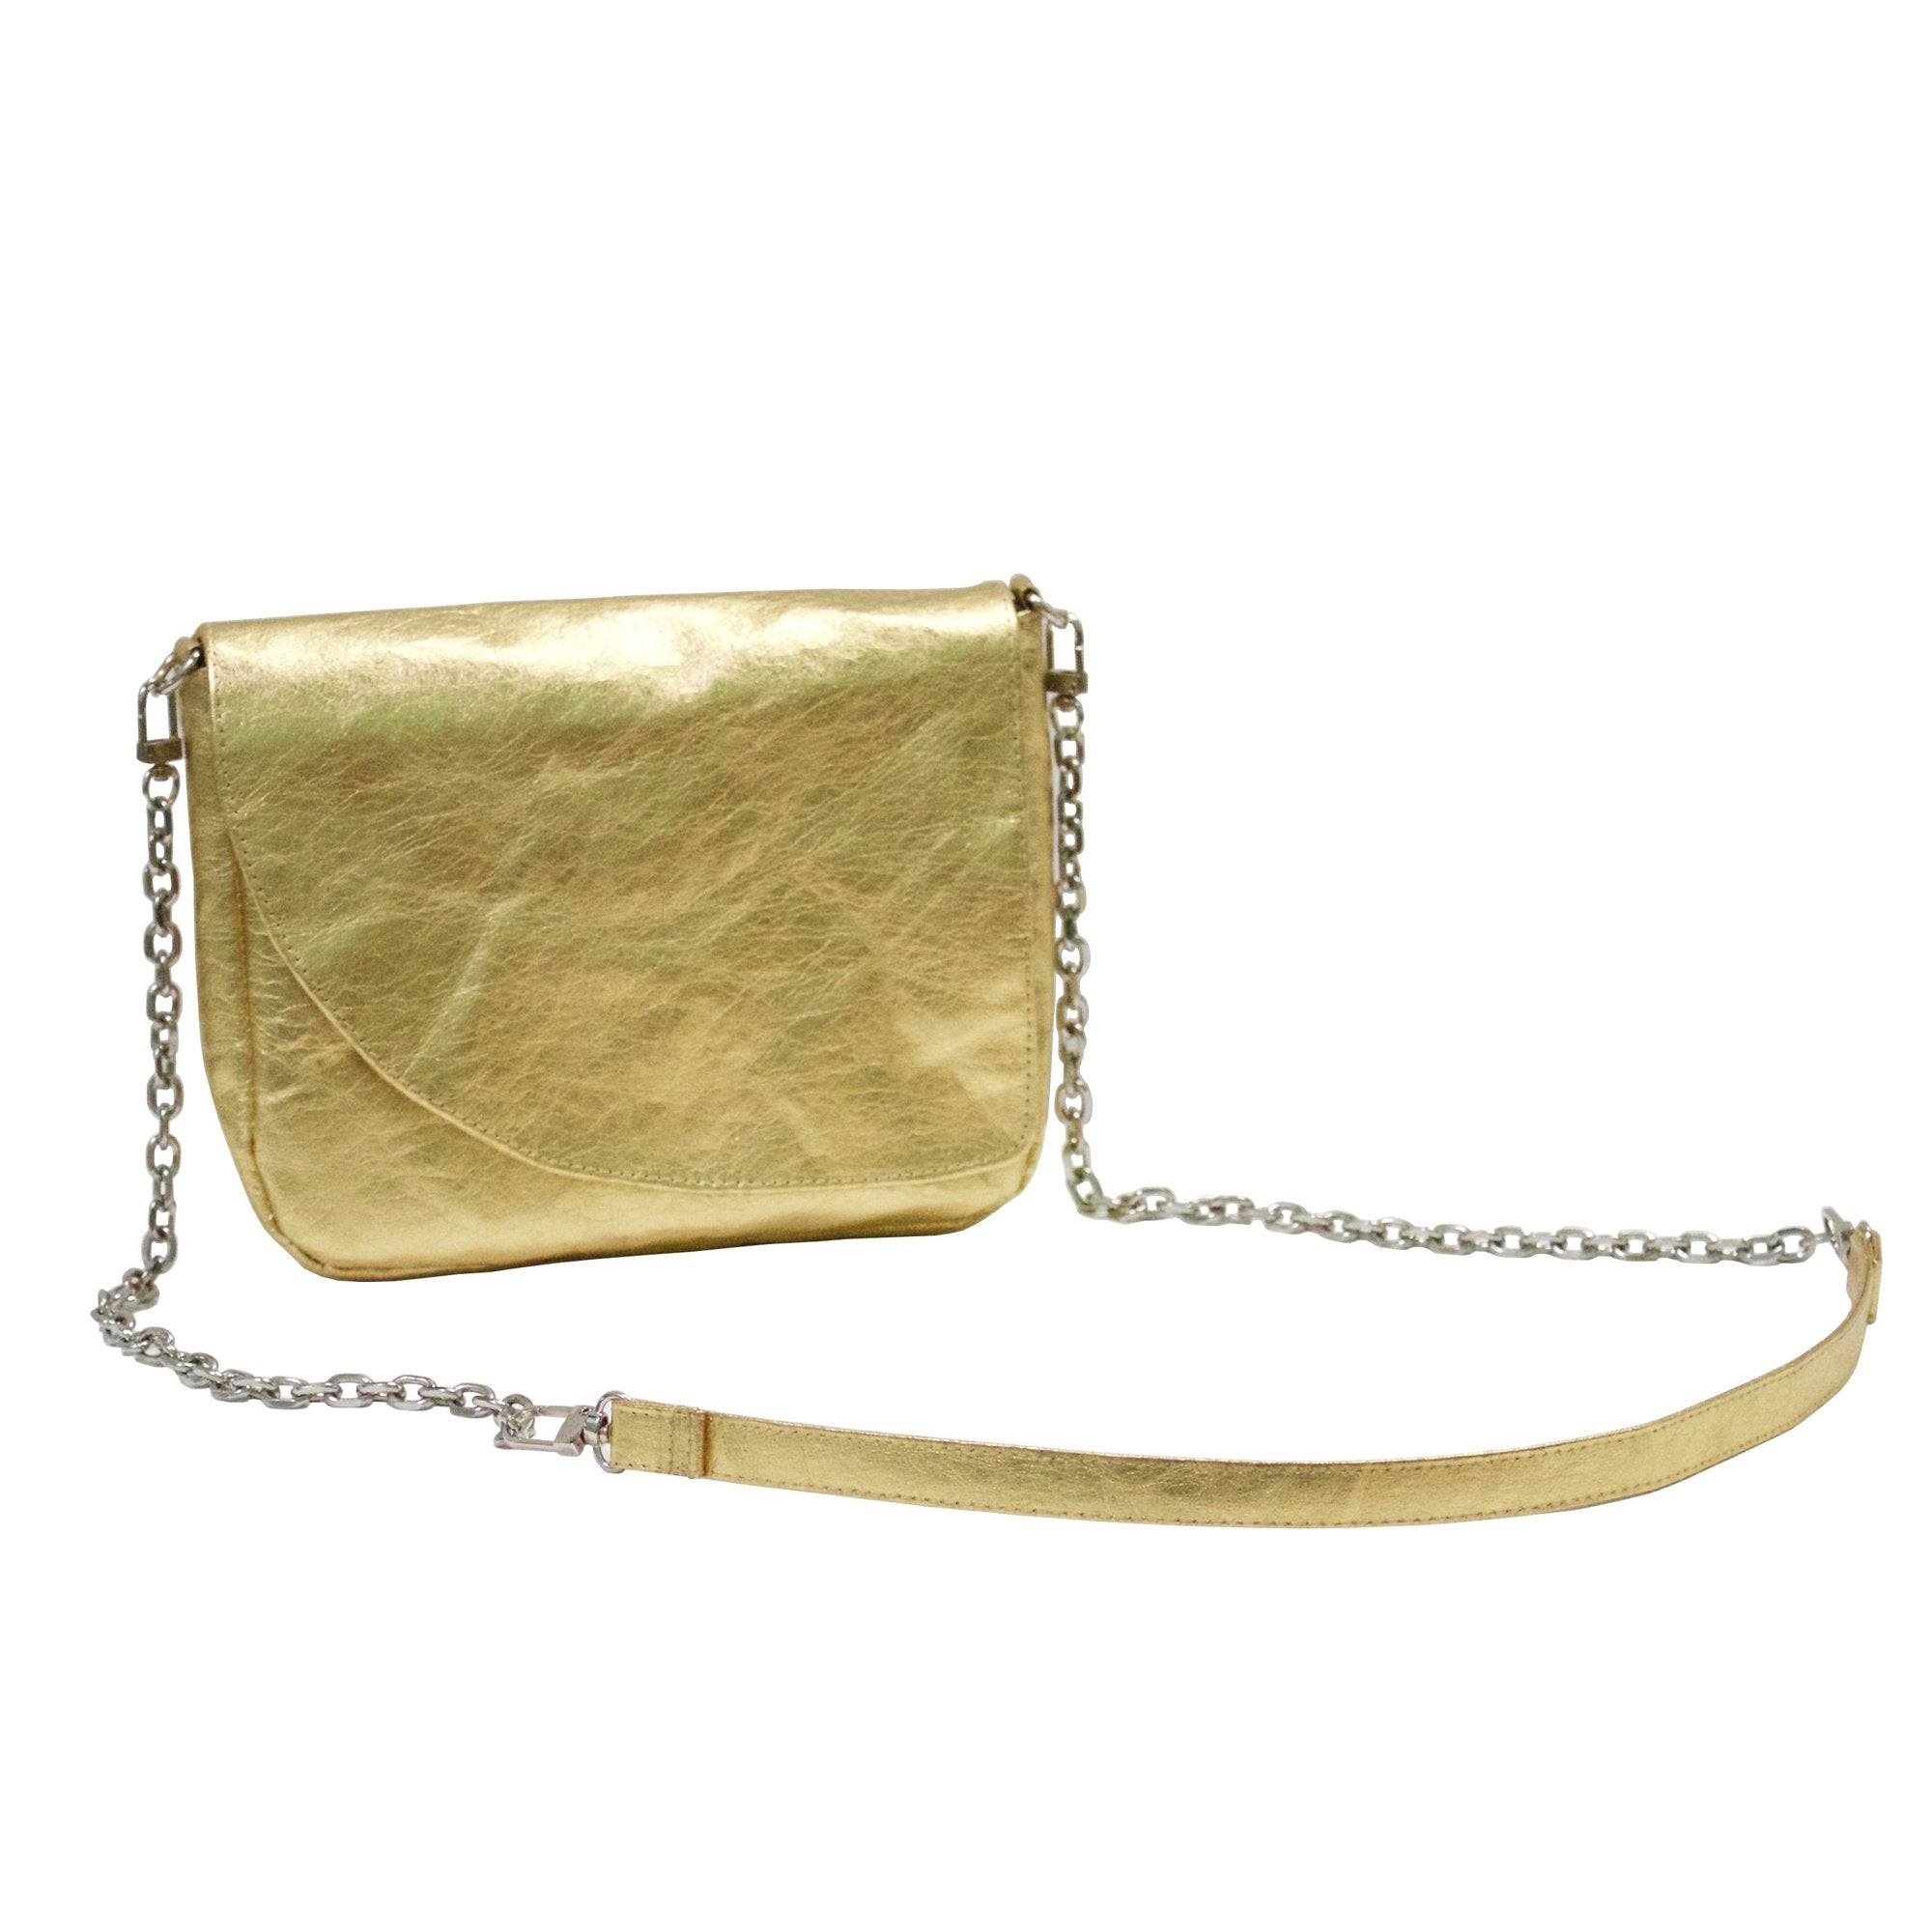 Electra Metallic Evening Clutch Bag made from Washable Paper-Kaban-Temples and Markets